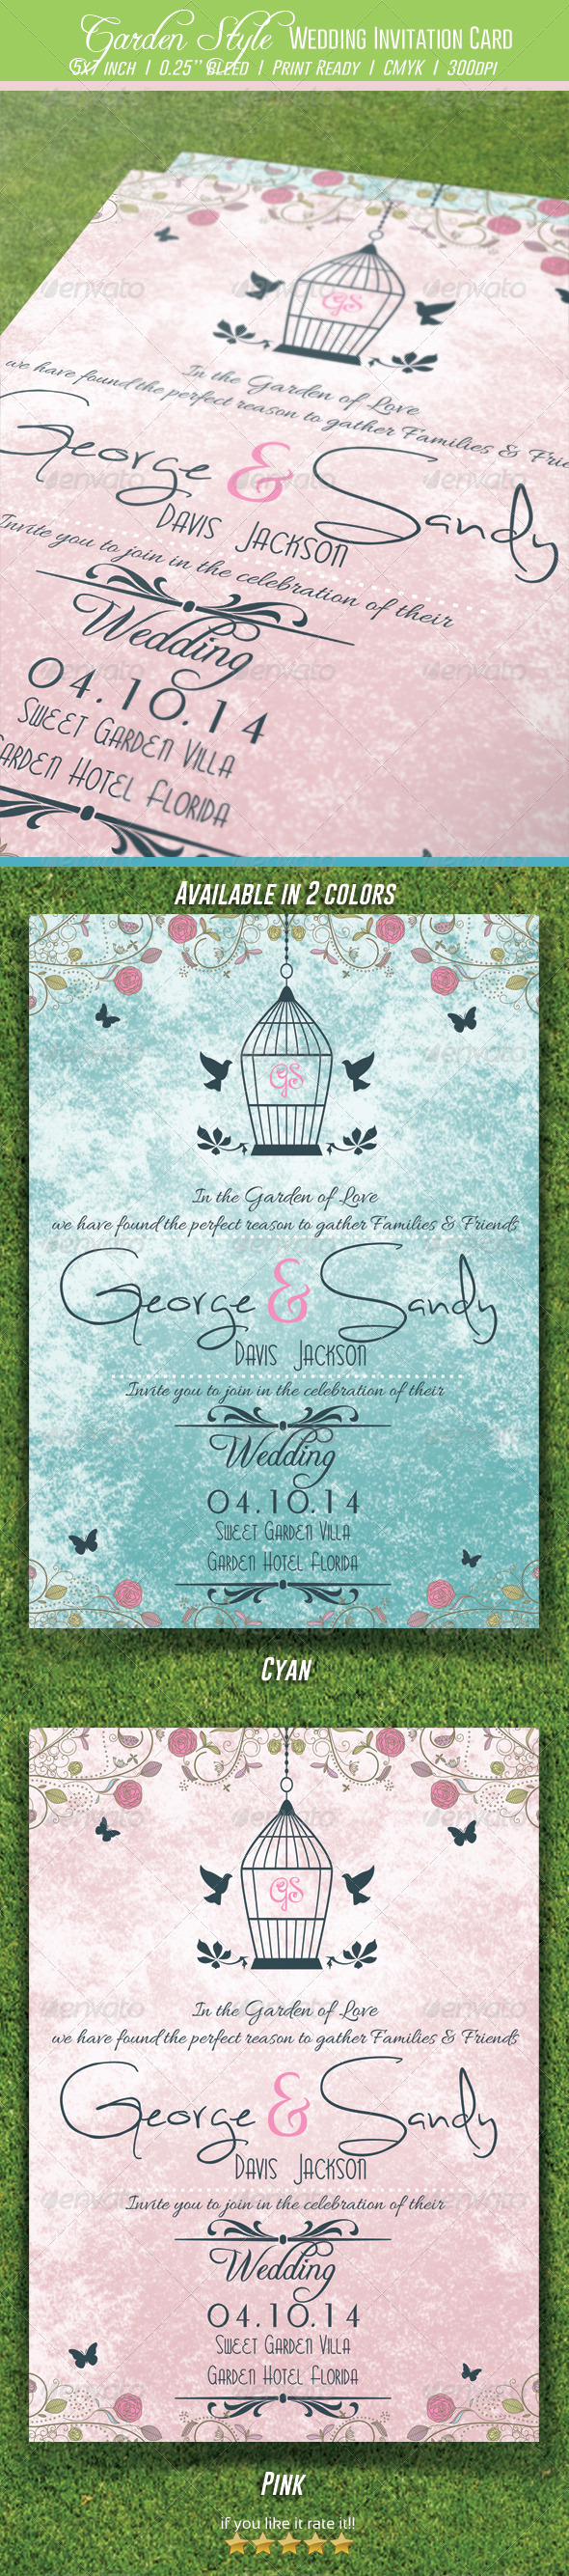 GraphicRiver Garden Style Wedding Invitation Card 7019647